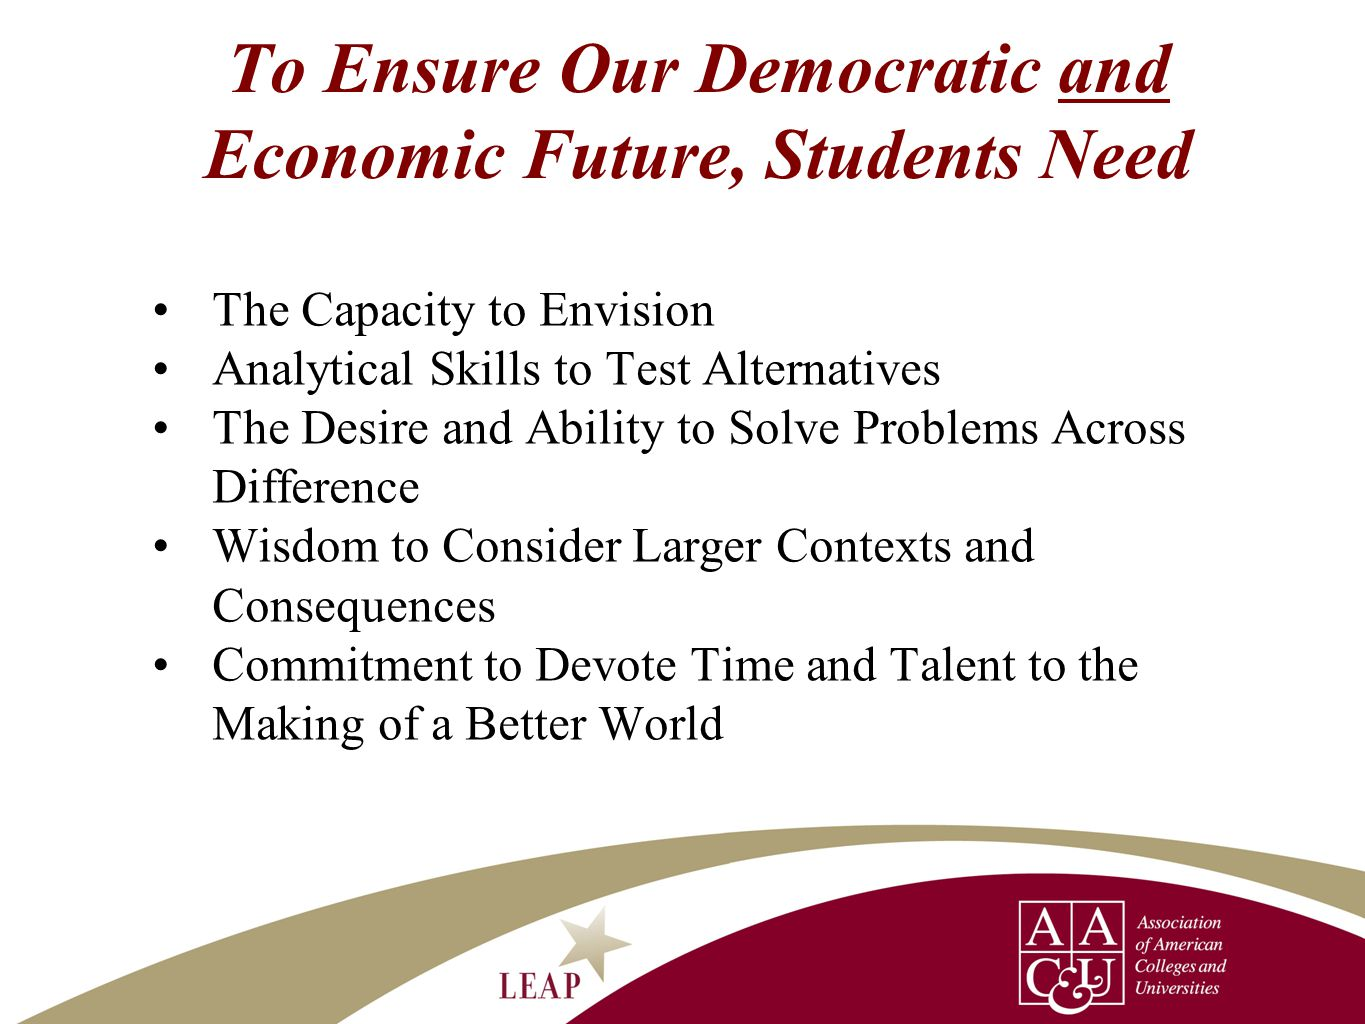 To Ensure Our Democratic and Economic Future, Students Need The Capacity to Envision Analytical Skills to Test Alternatives The Desire and Ability to